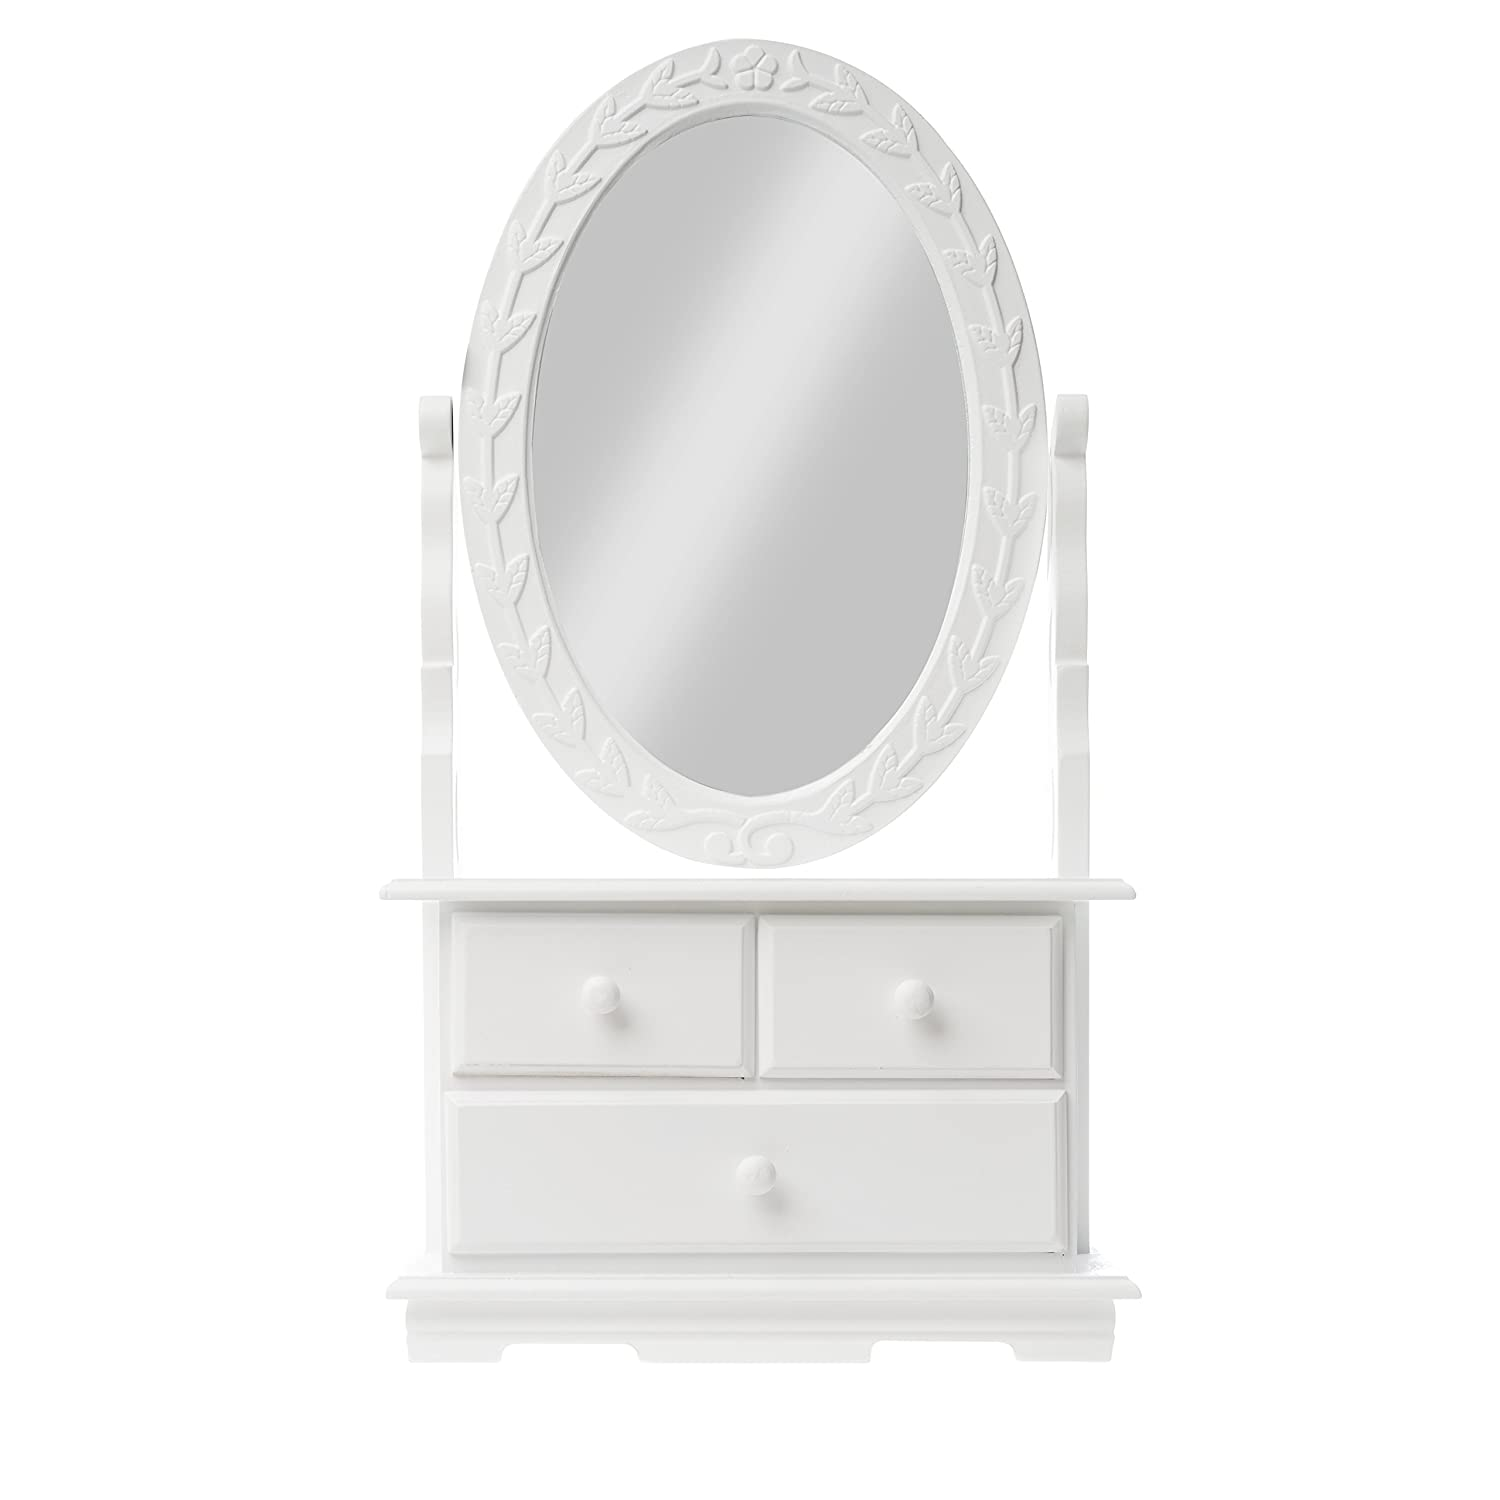 Dressing table Mirror Dressing table white antique Wood dressing table Rosali elbmoebel